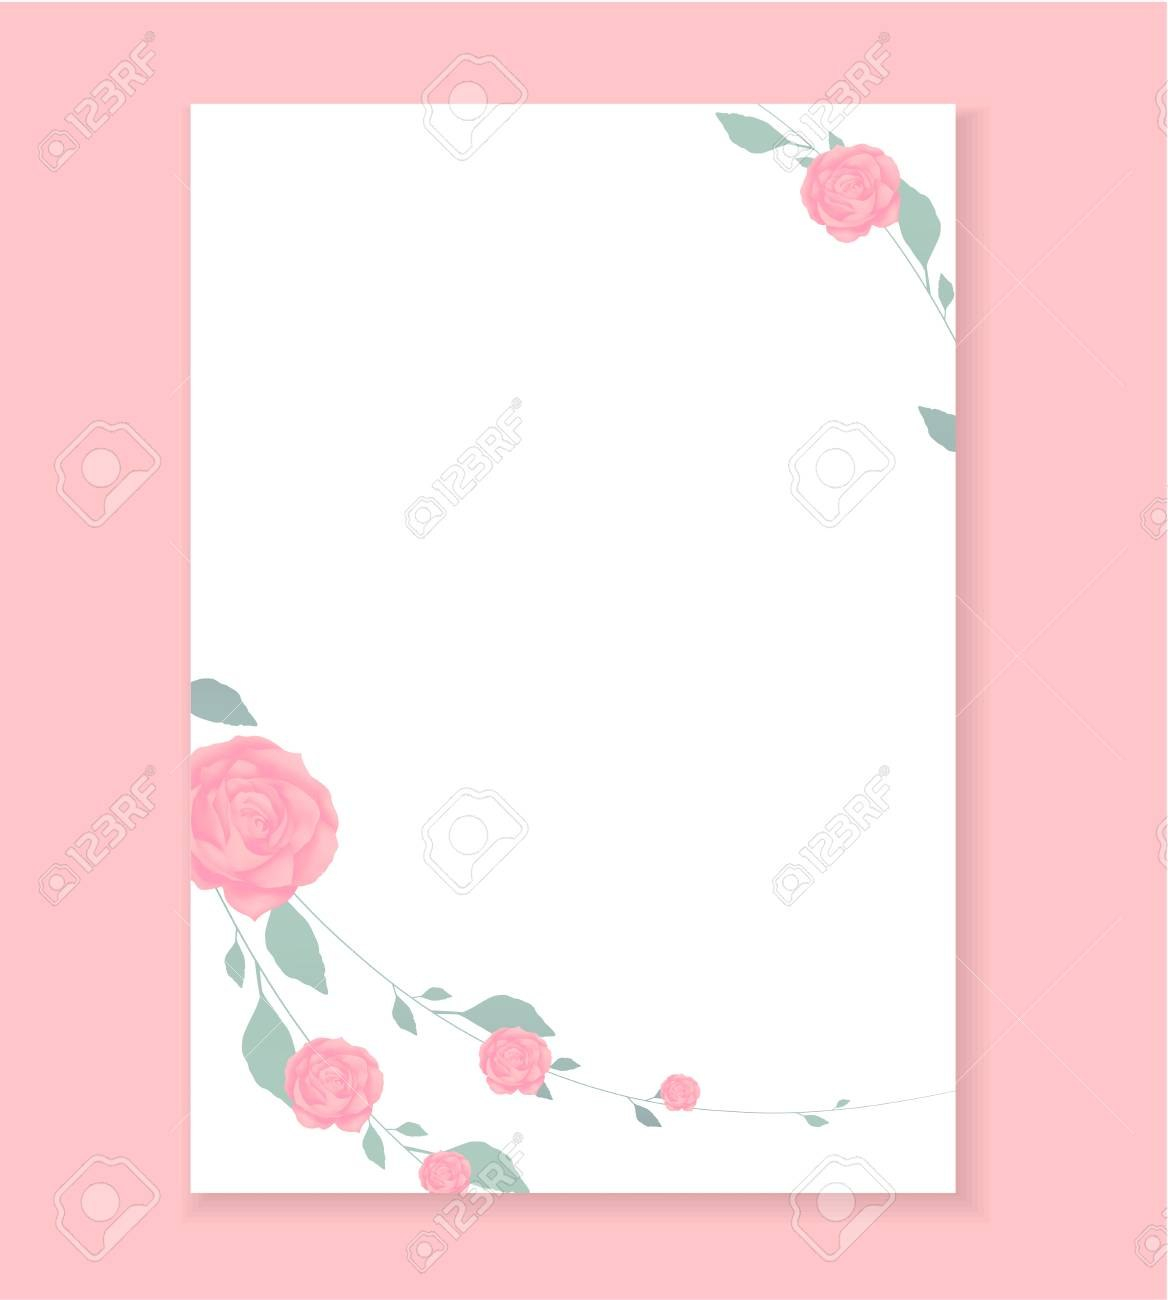 Love Letter Blank Template With Rose Flower Pattern Background Inside Template For Love Letter